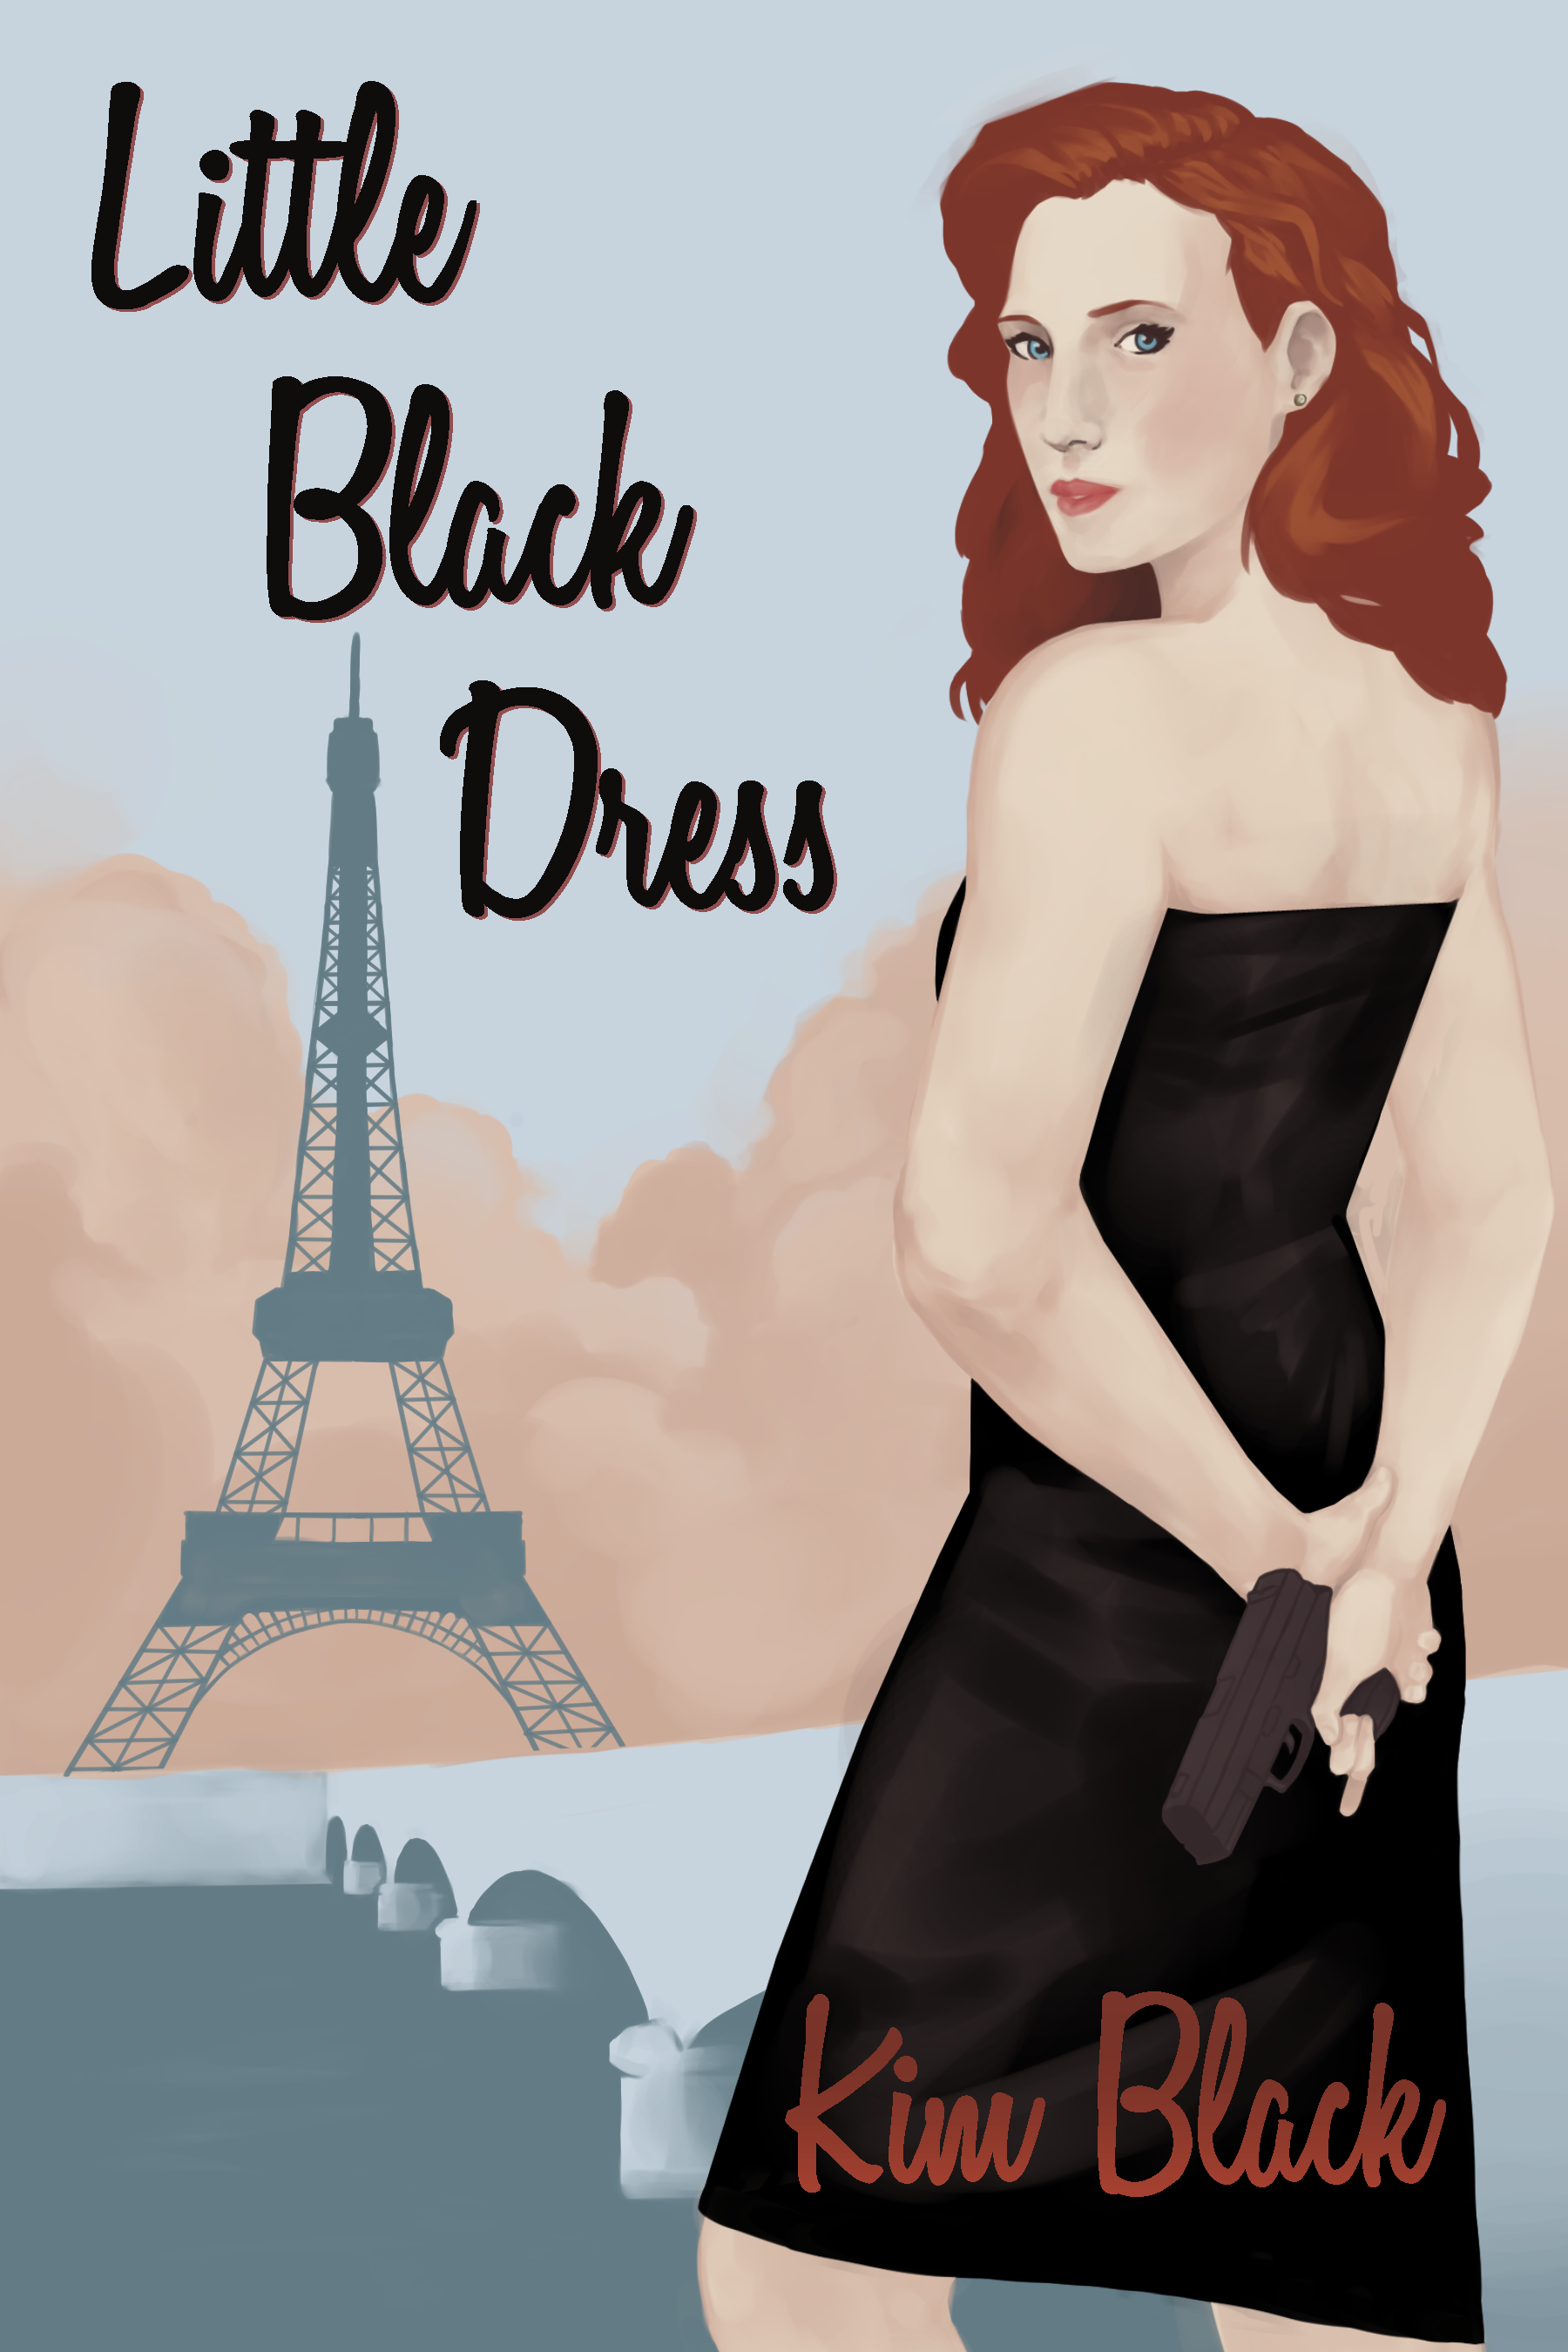 The LITTLE BLACK DRESS cover is a beautiful design created by Kim's son.